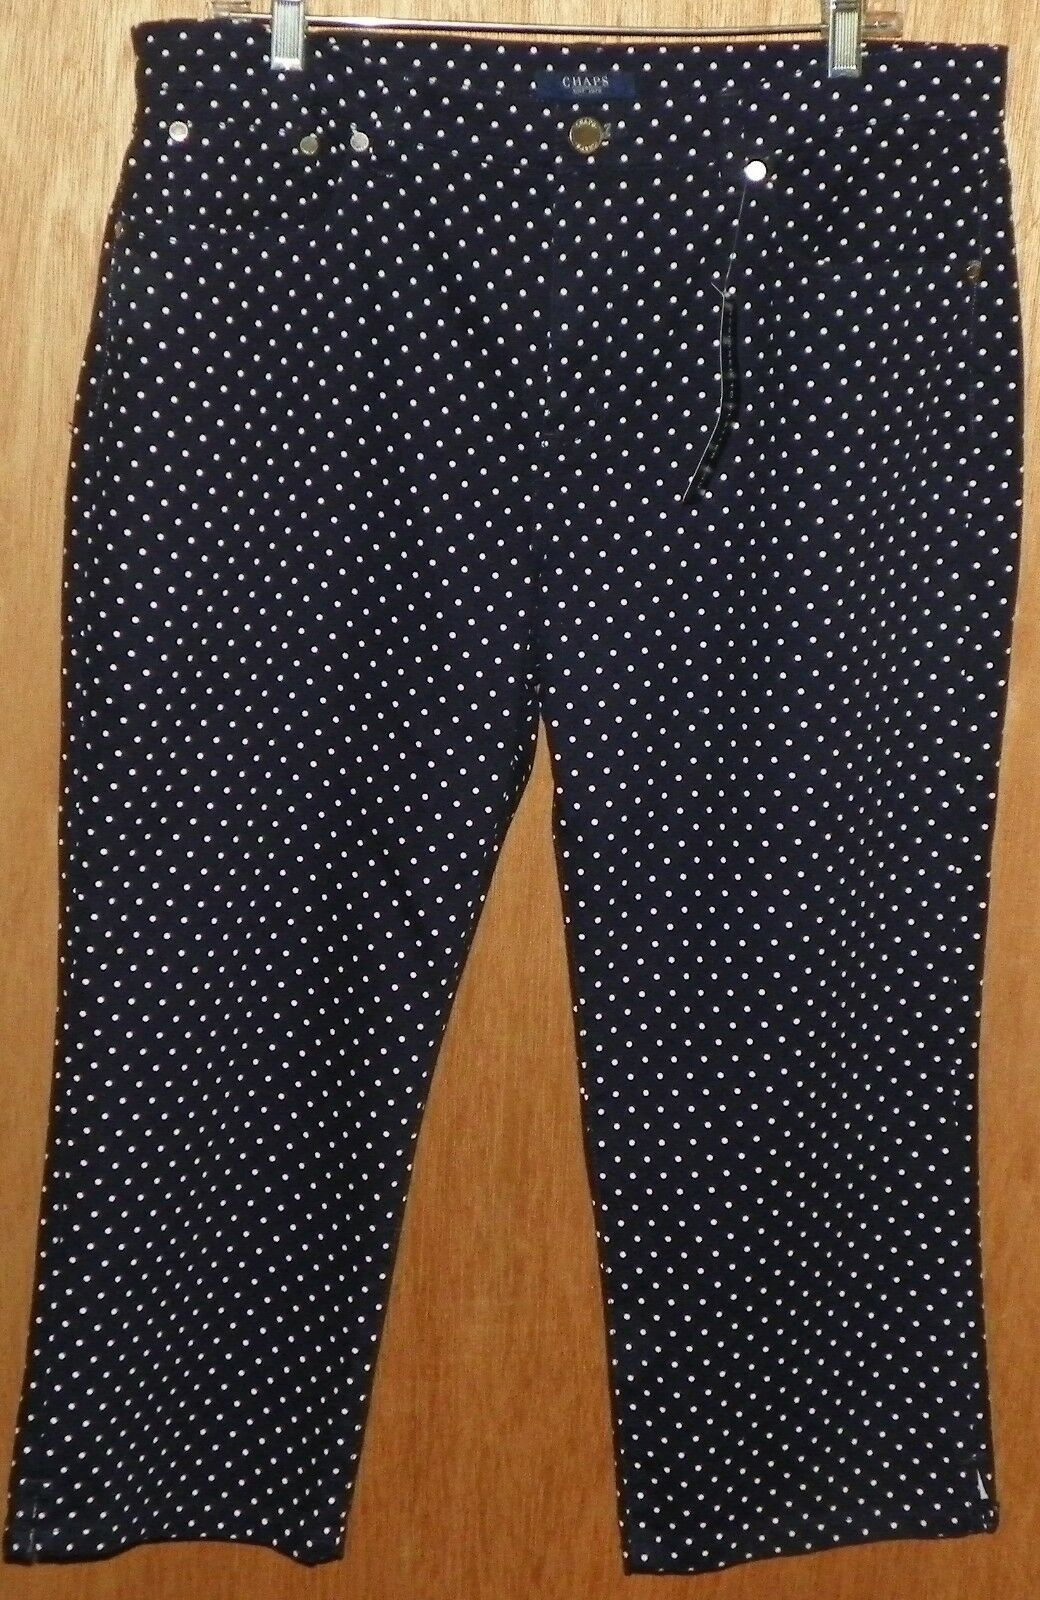 Chaps bluee White Polka Dot Capri Cropped Pants Size 14 Slimming Fit NEW Tags